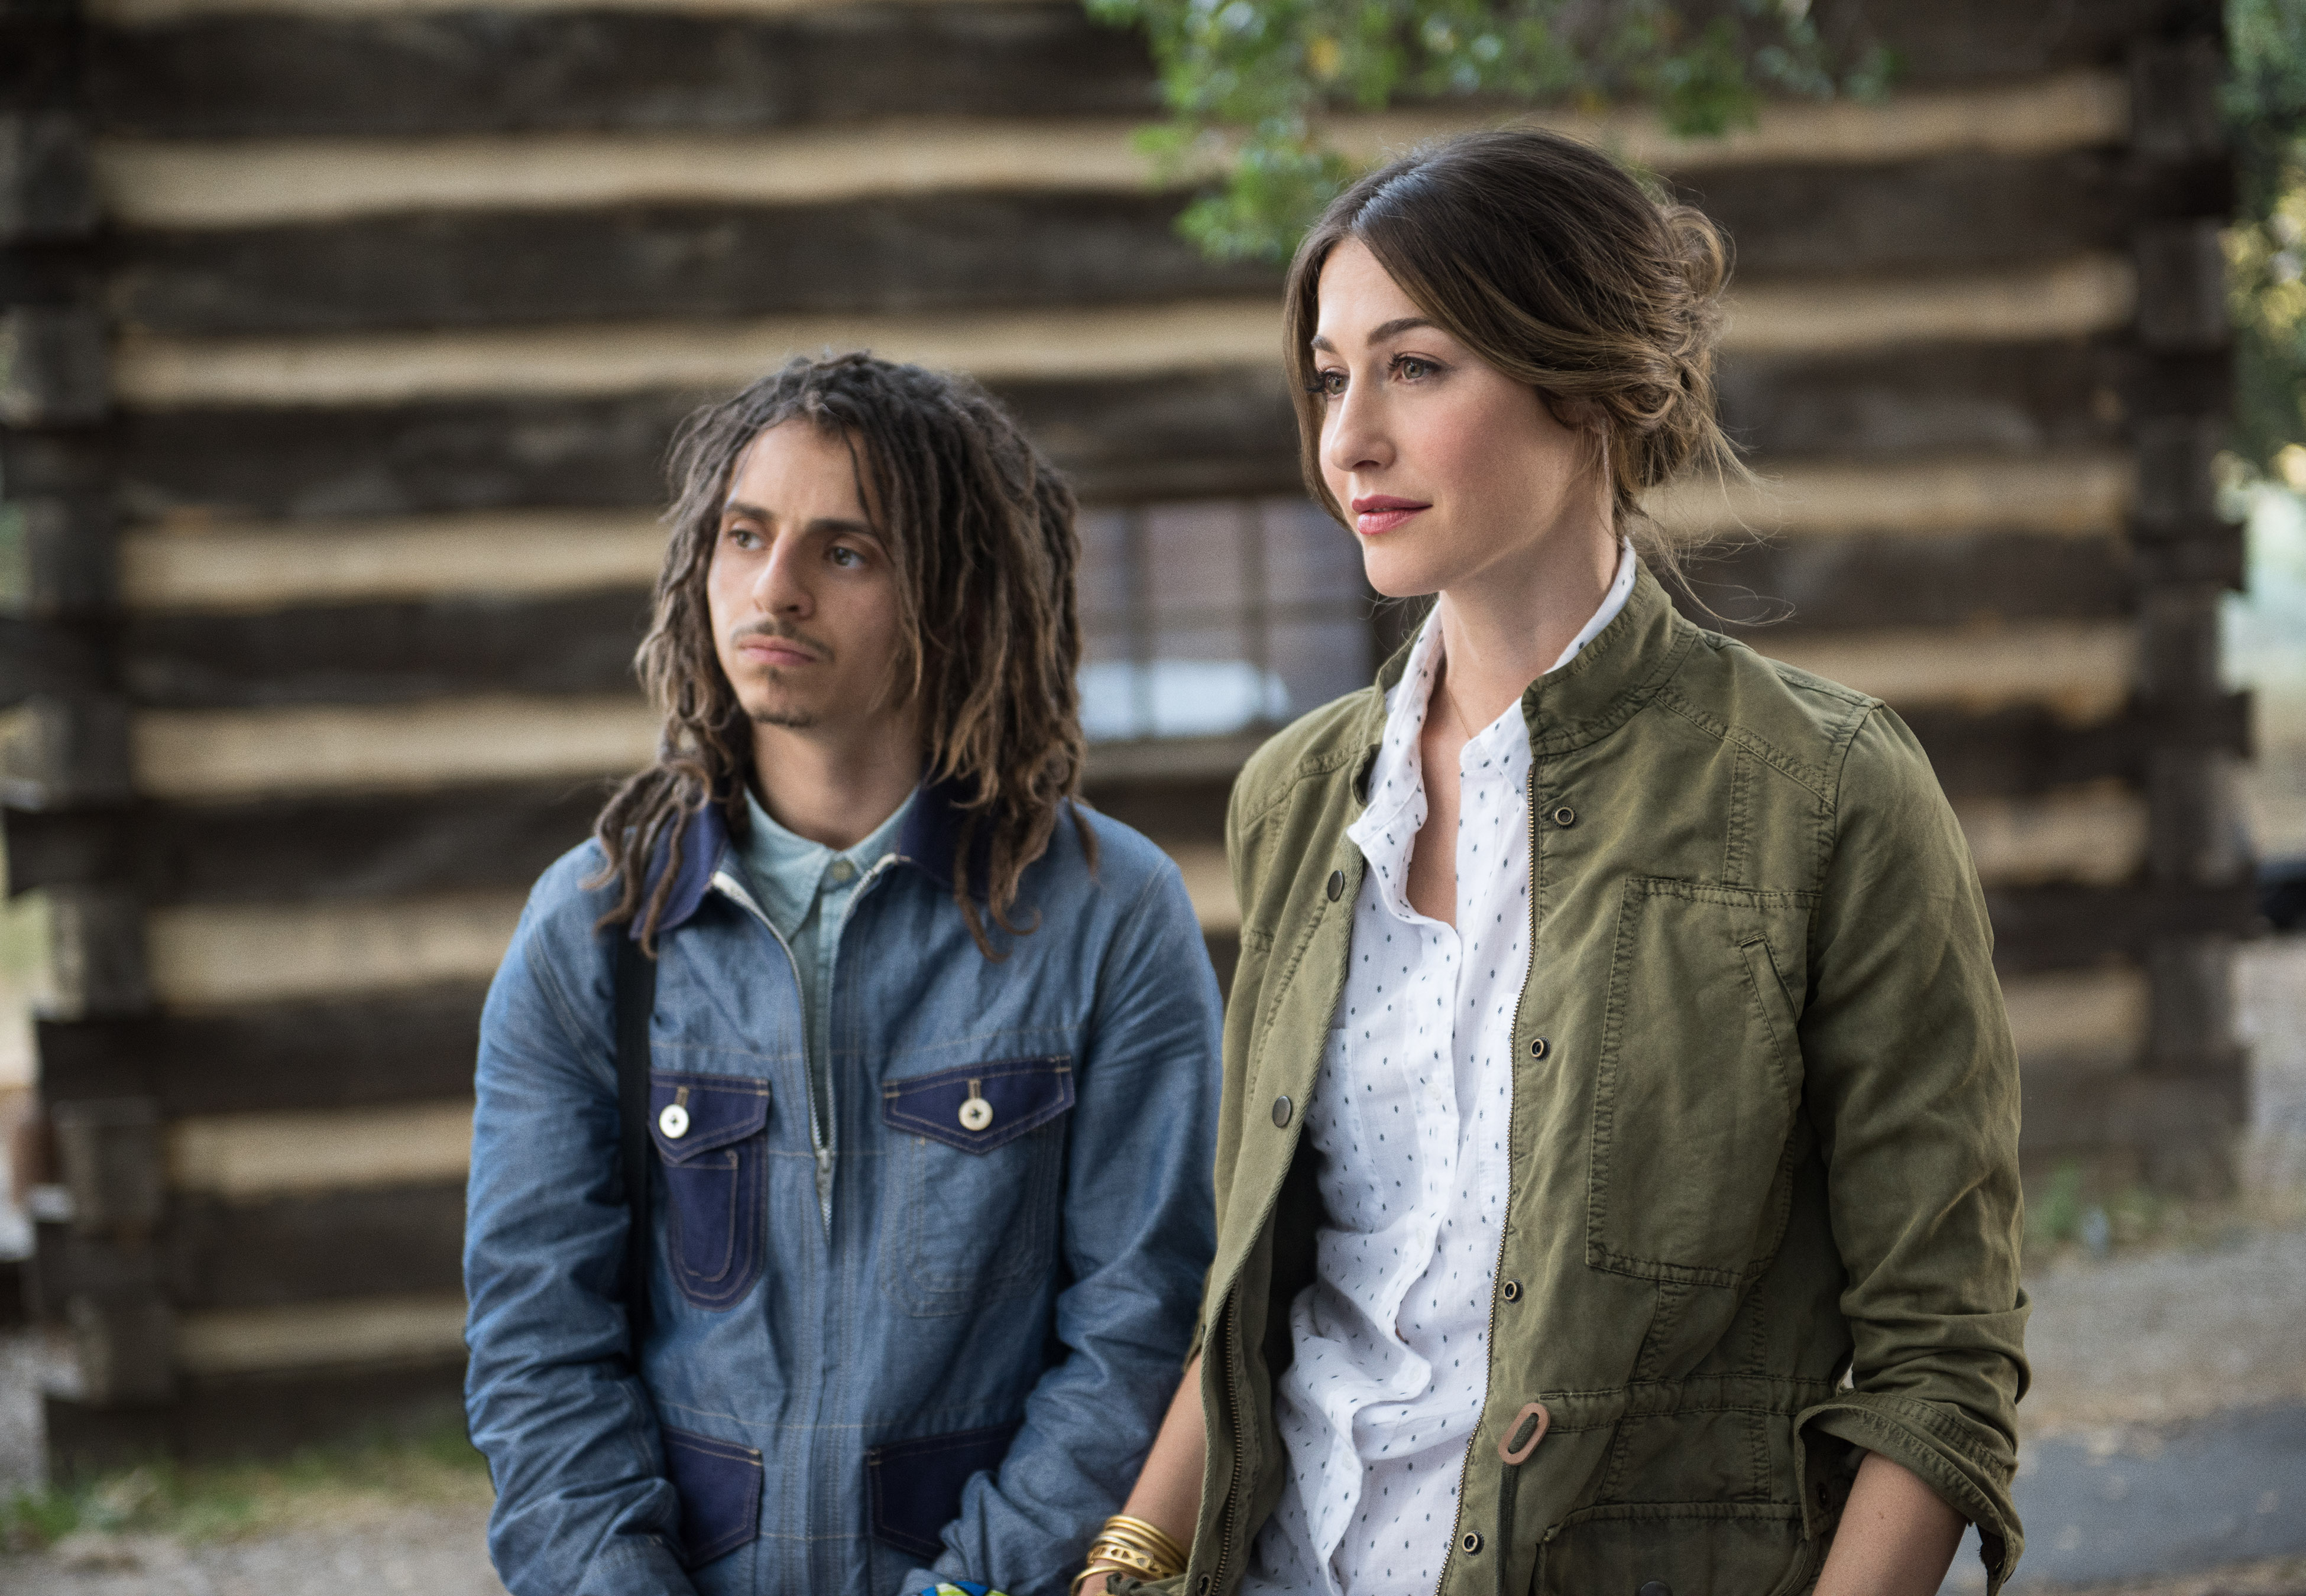 Kat Foster and Moises Arias in Pilot (2016)